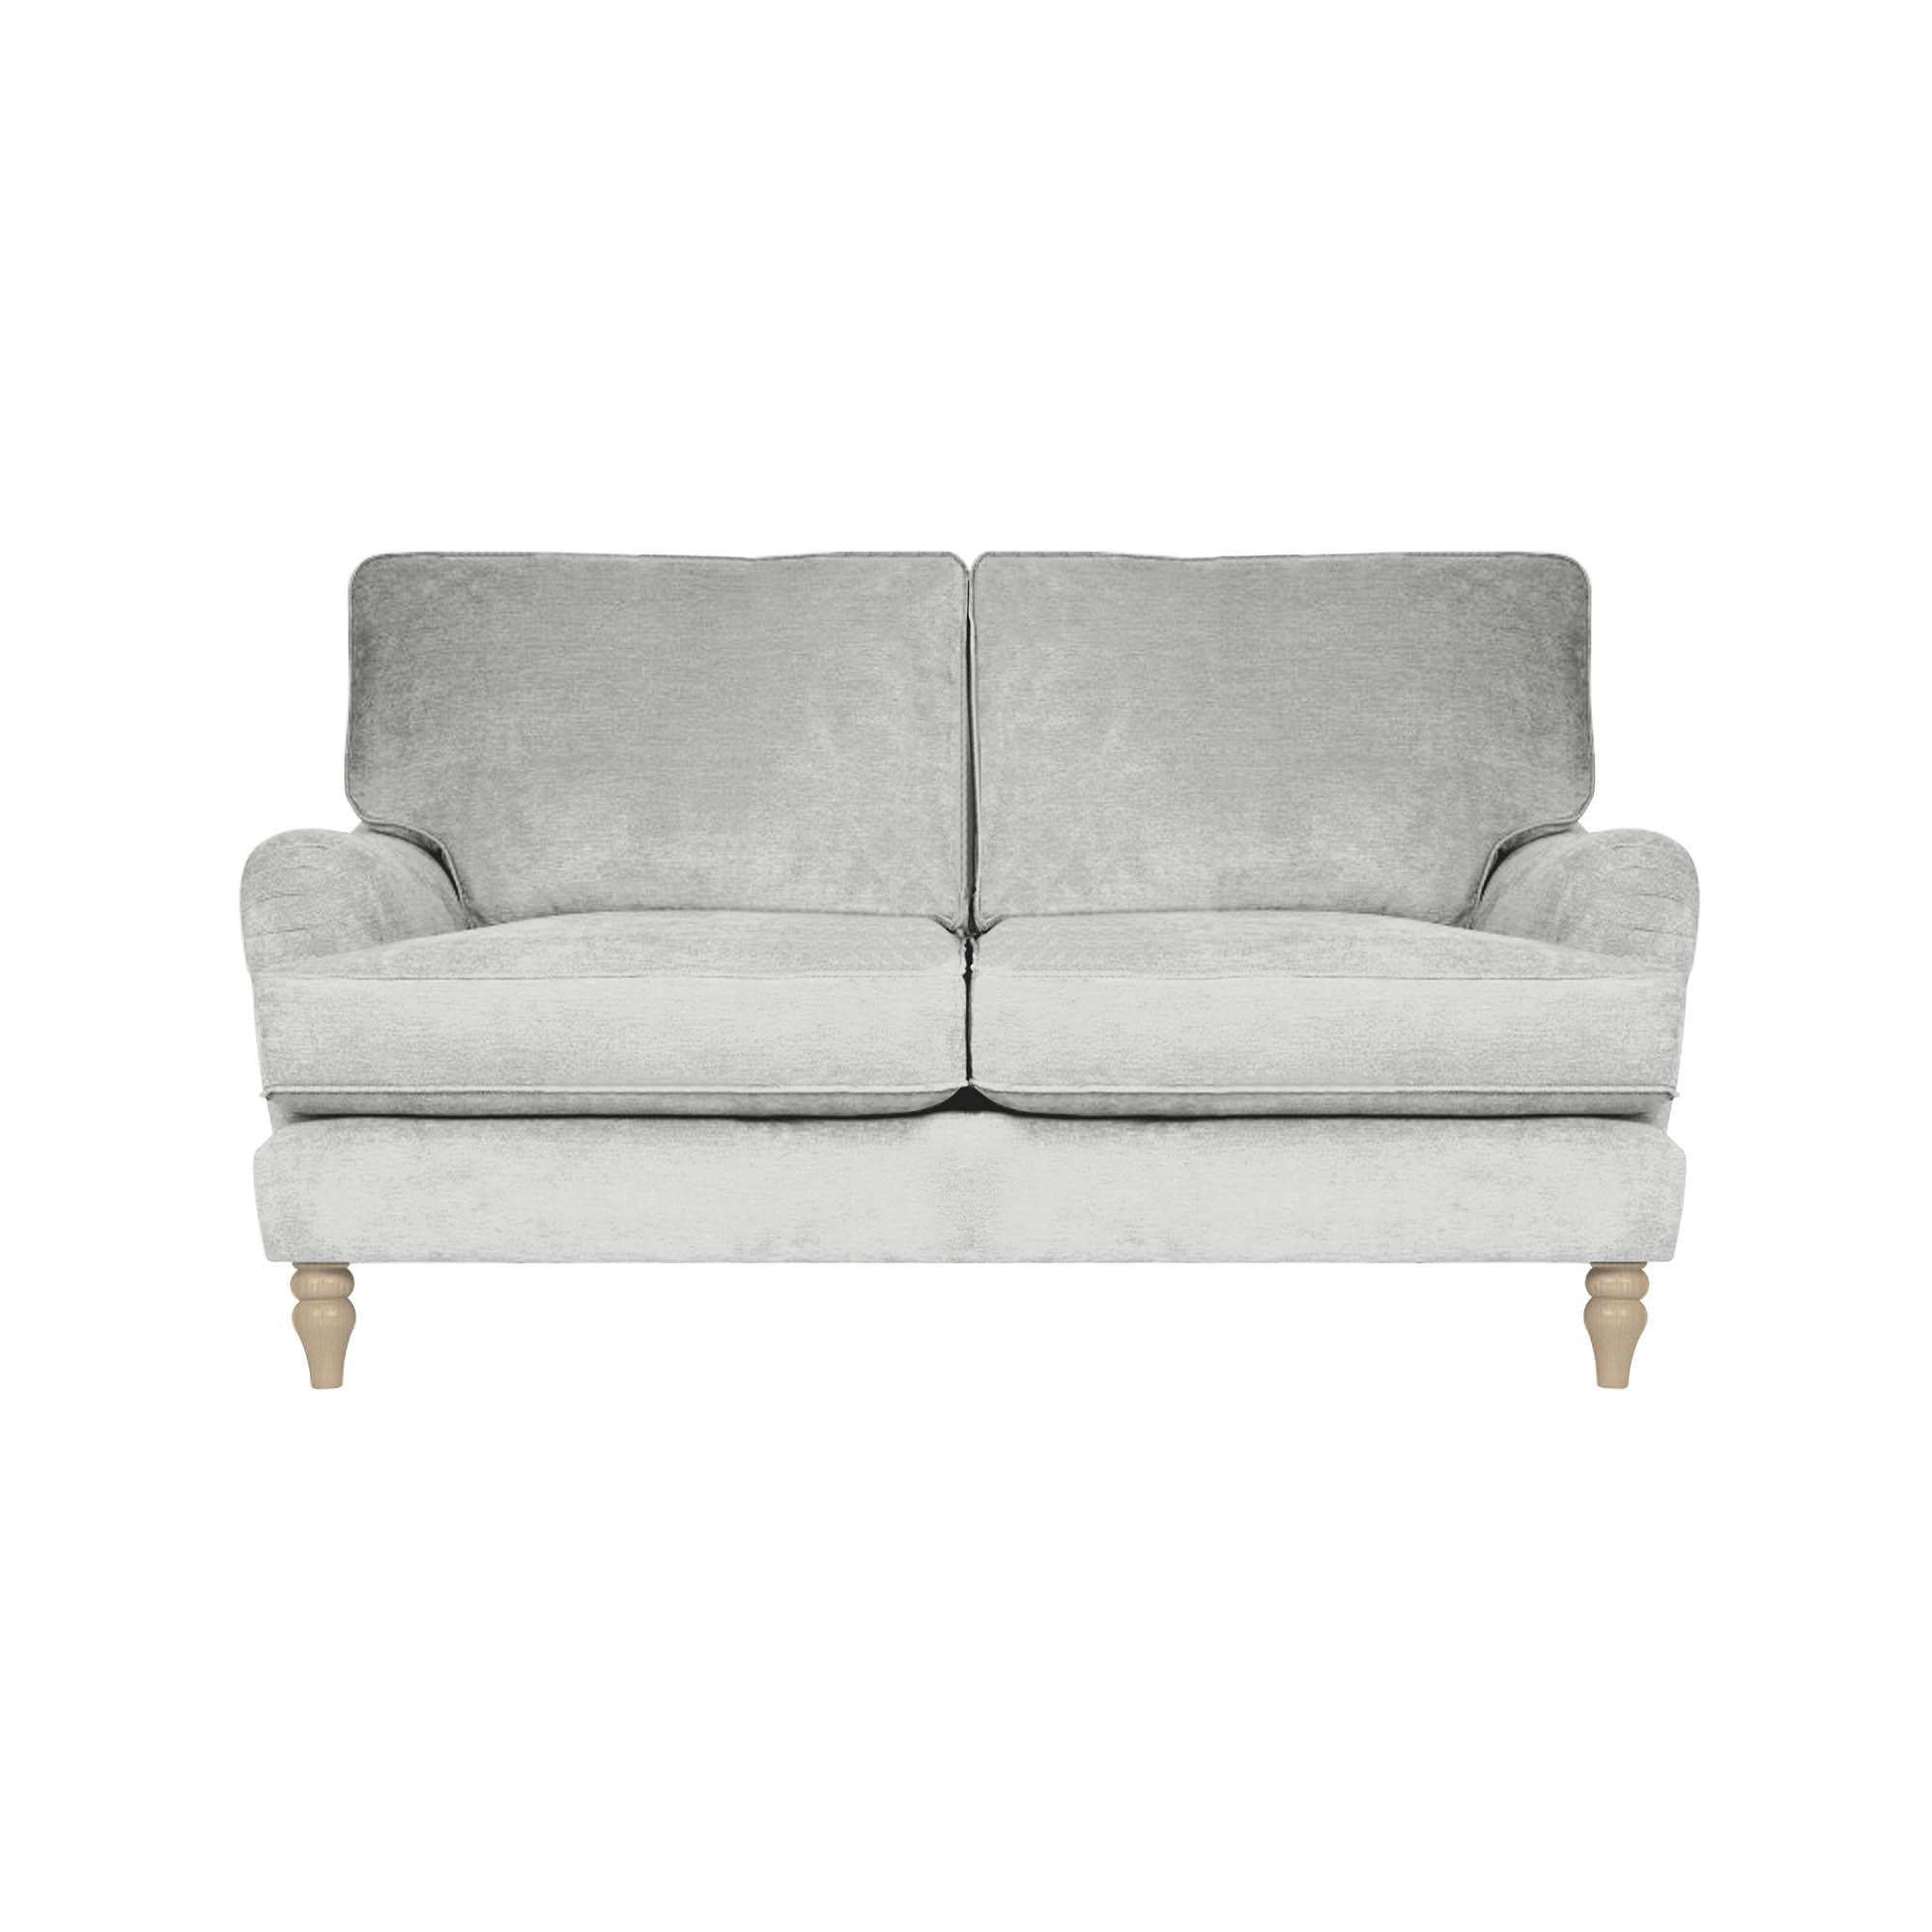 two seater sofa bella 2 seater sofa PODNXEQ